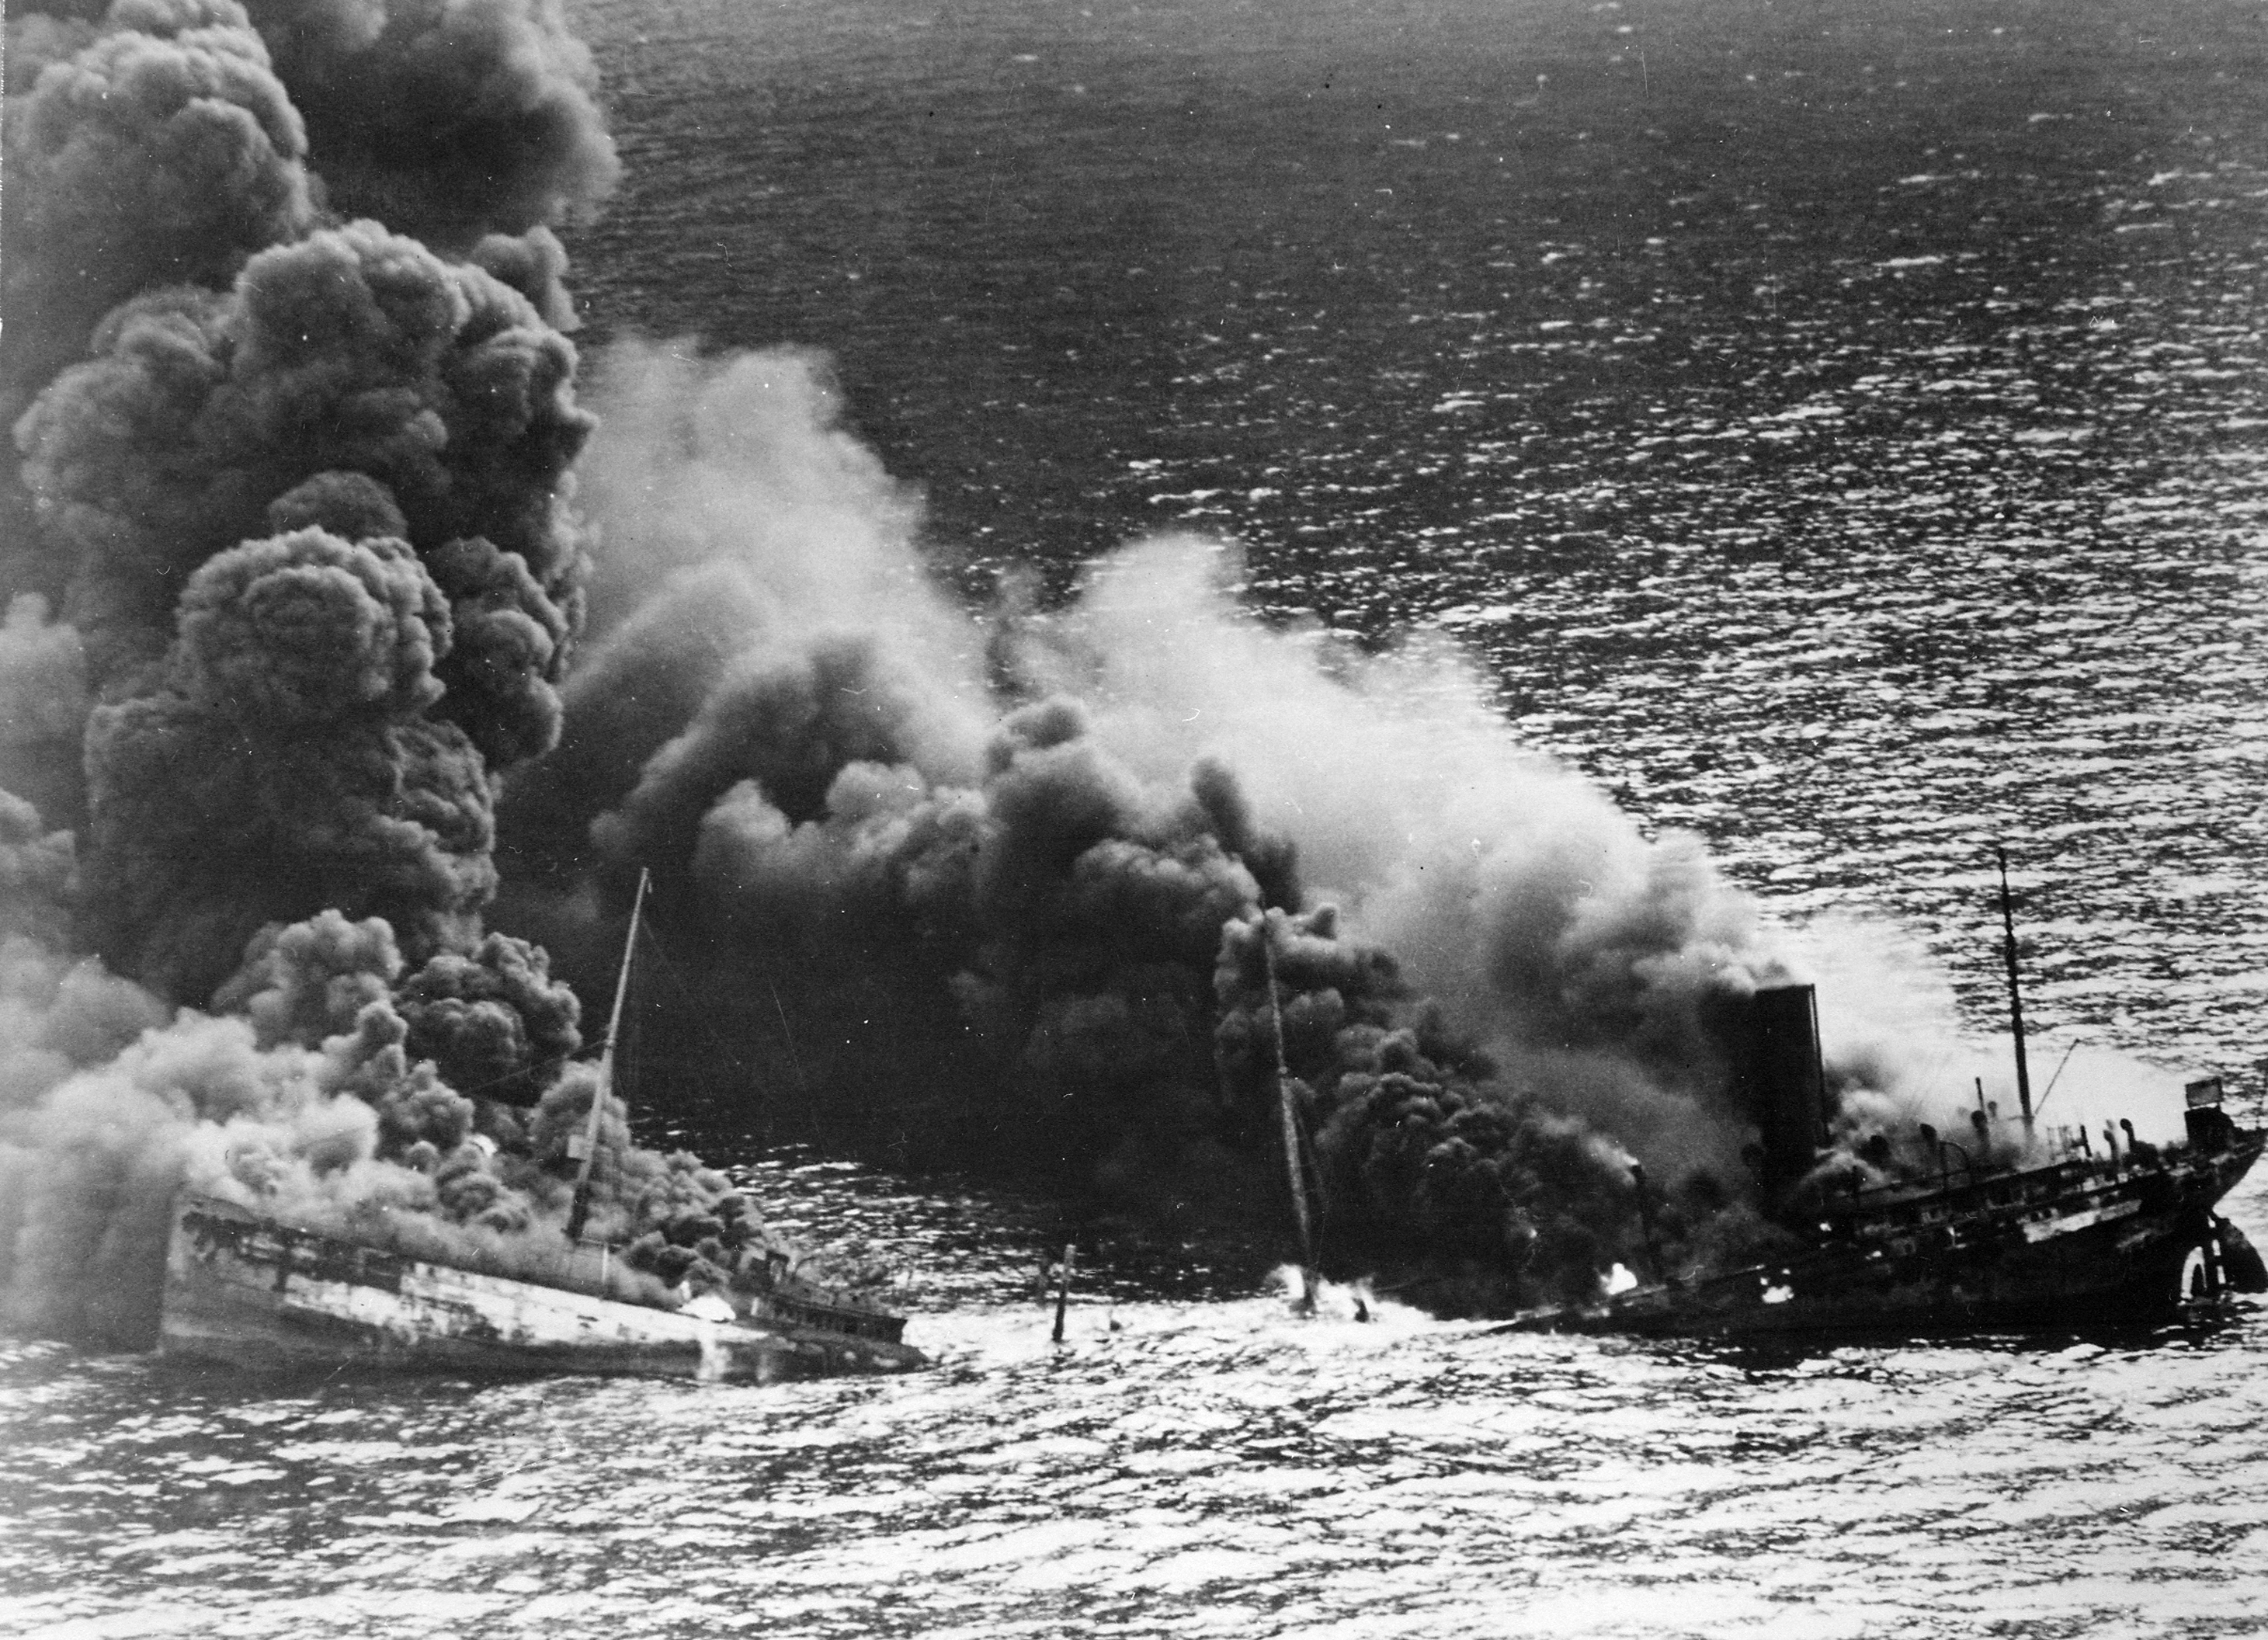 battle of atlantic The battle of the atlantic was the longest continuous military campaign in world war ii, running from 1939 to the defeat of germany in 1945 it was a major part of the naval history of world war ii.